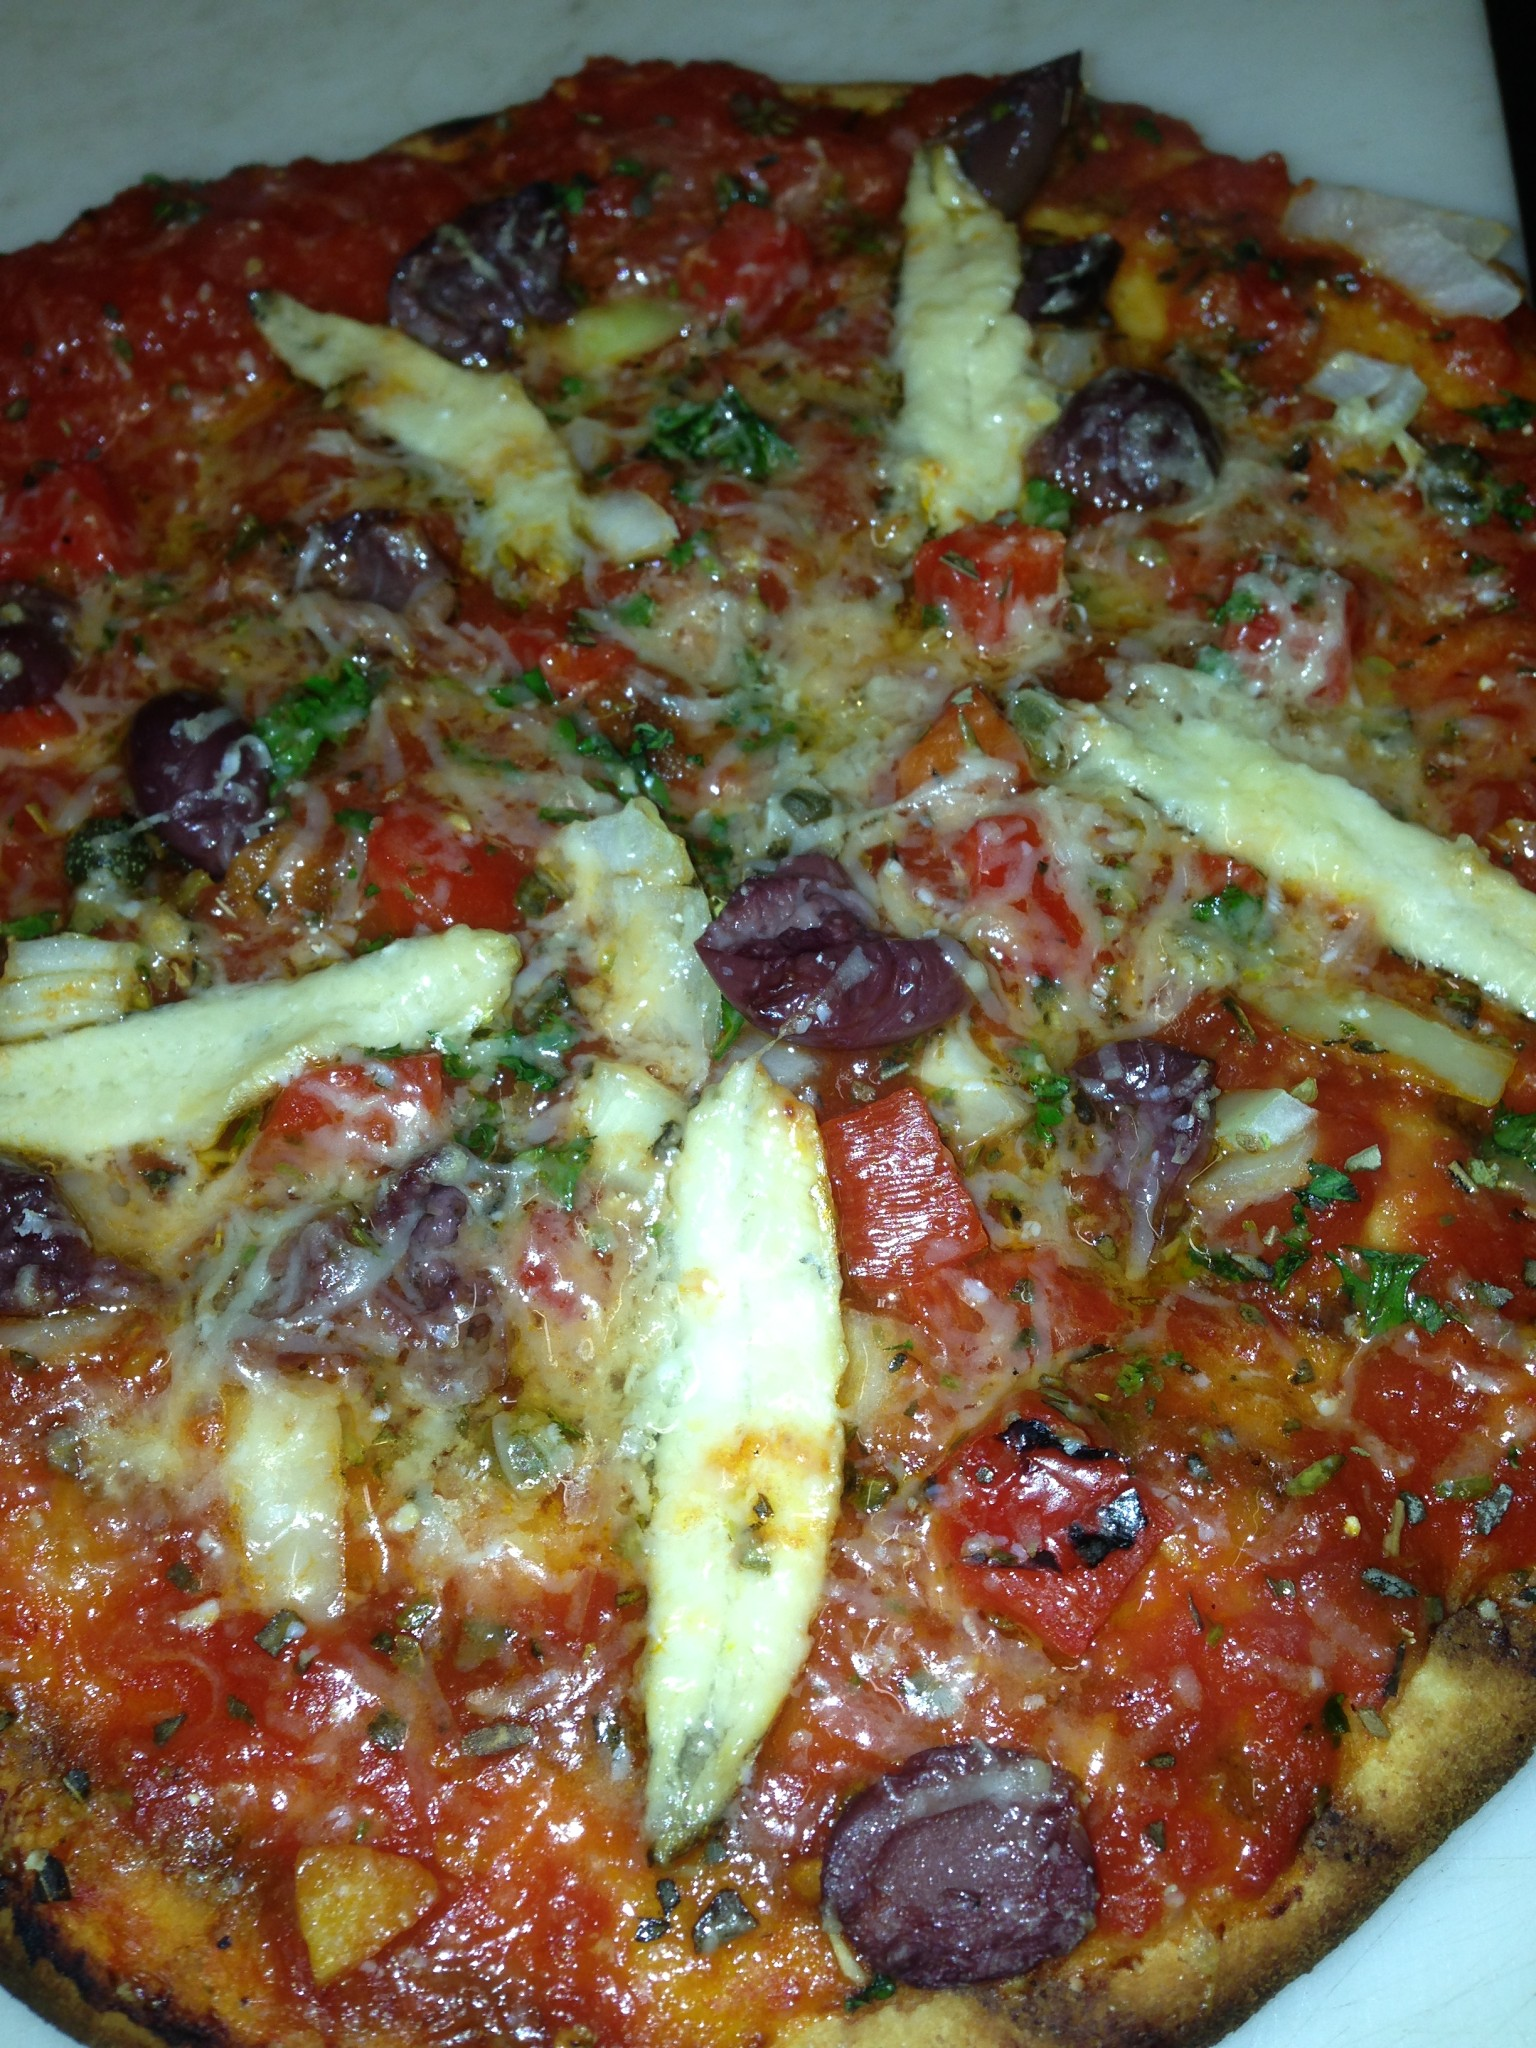 Photo: pizza at the kasbah in winthrop